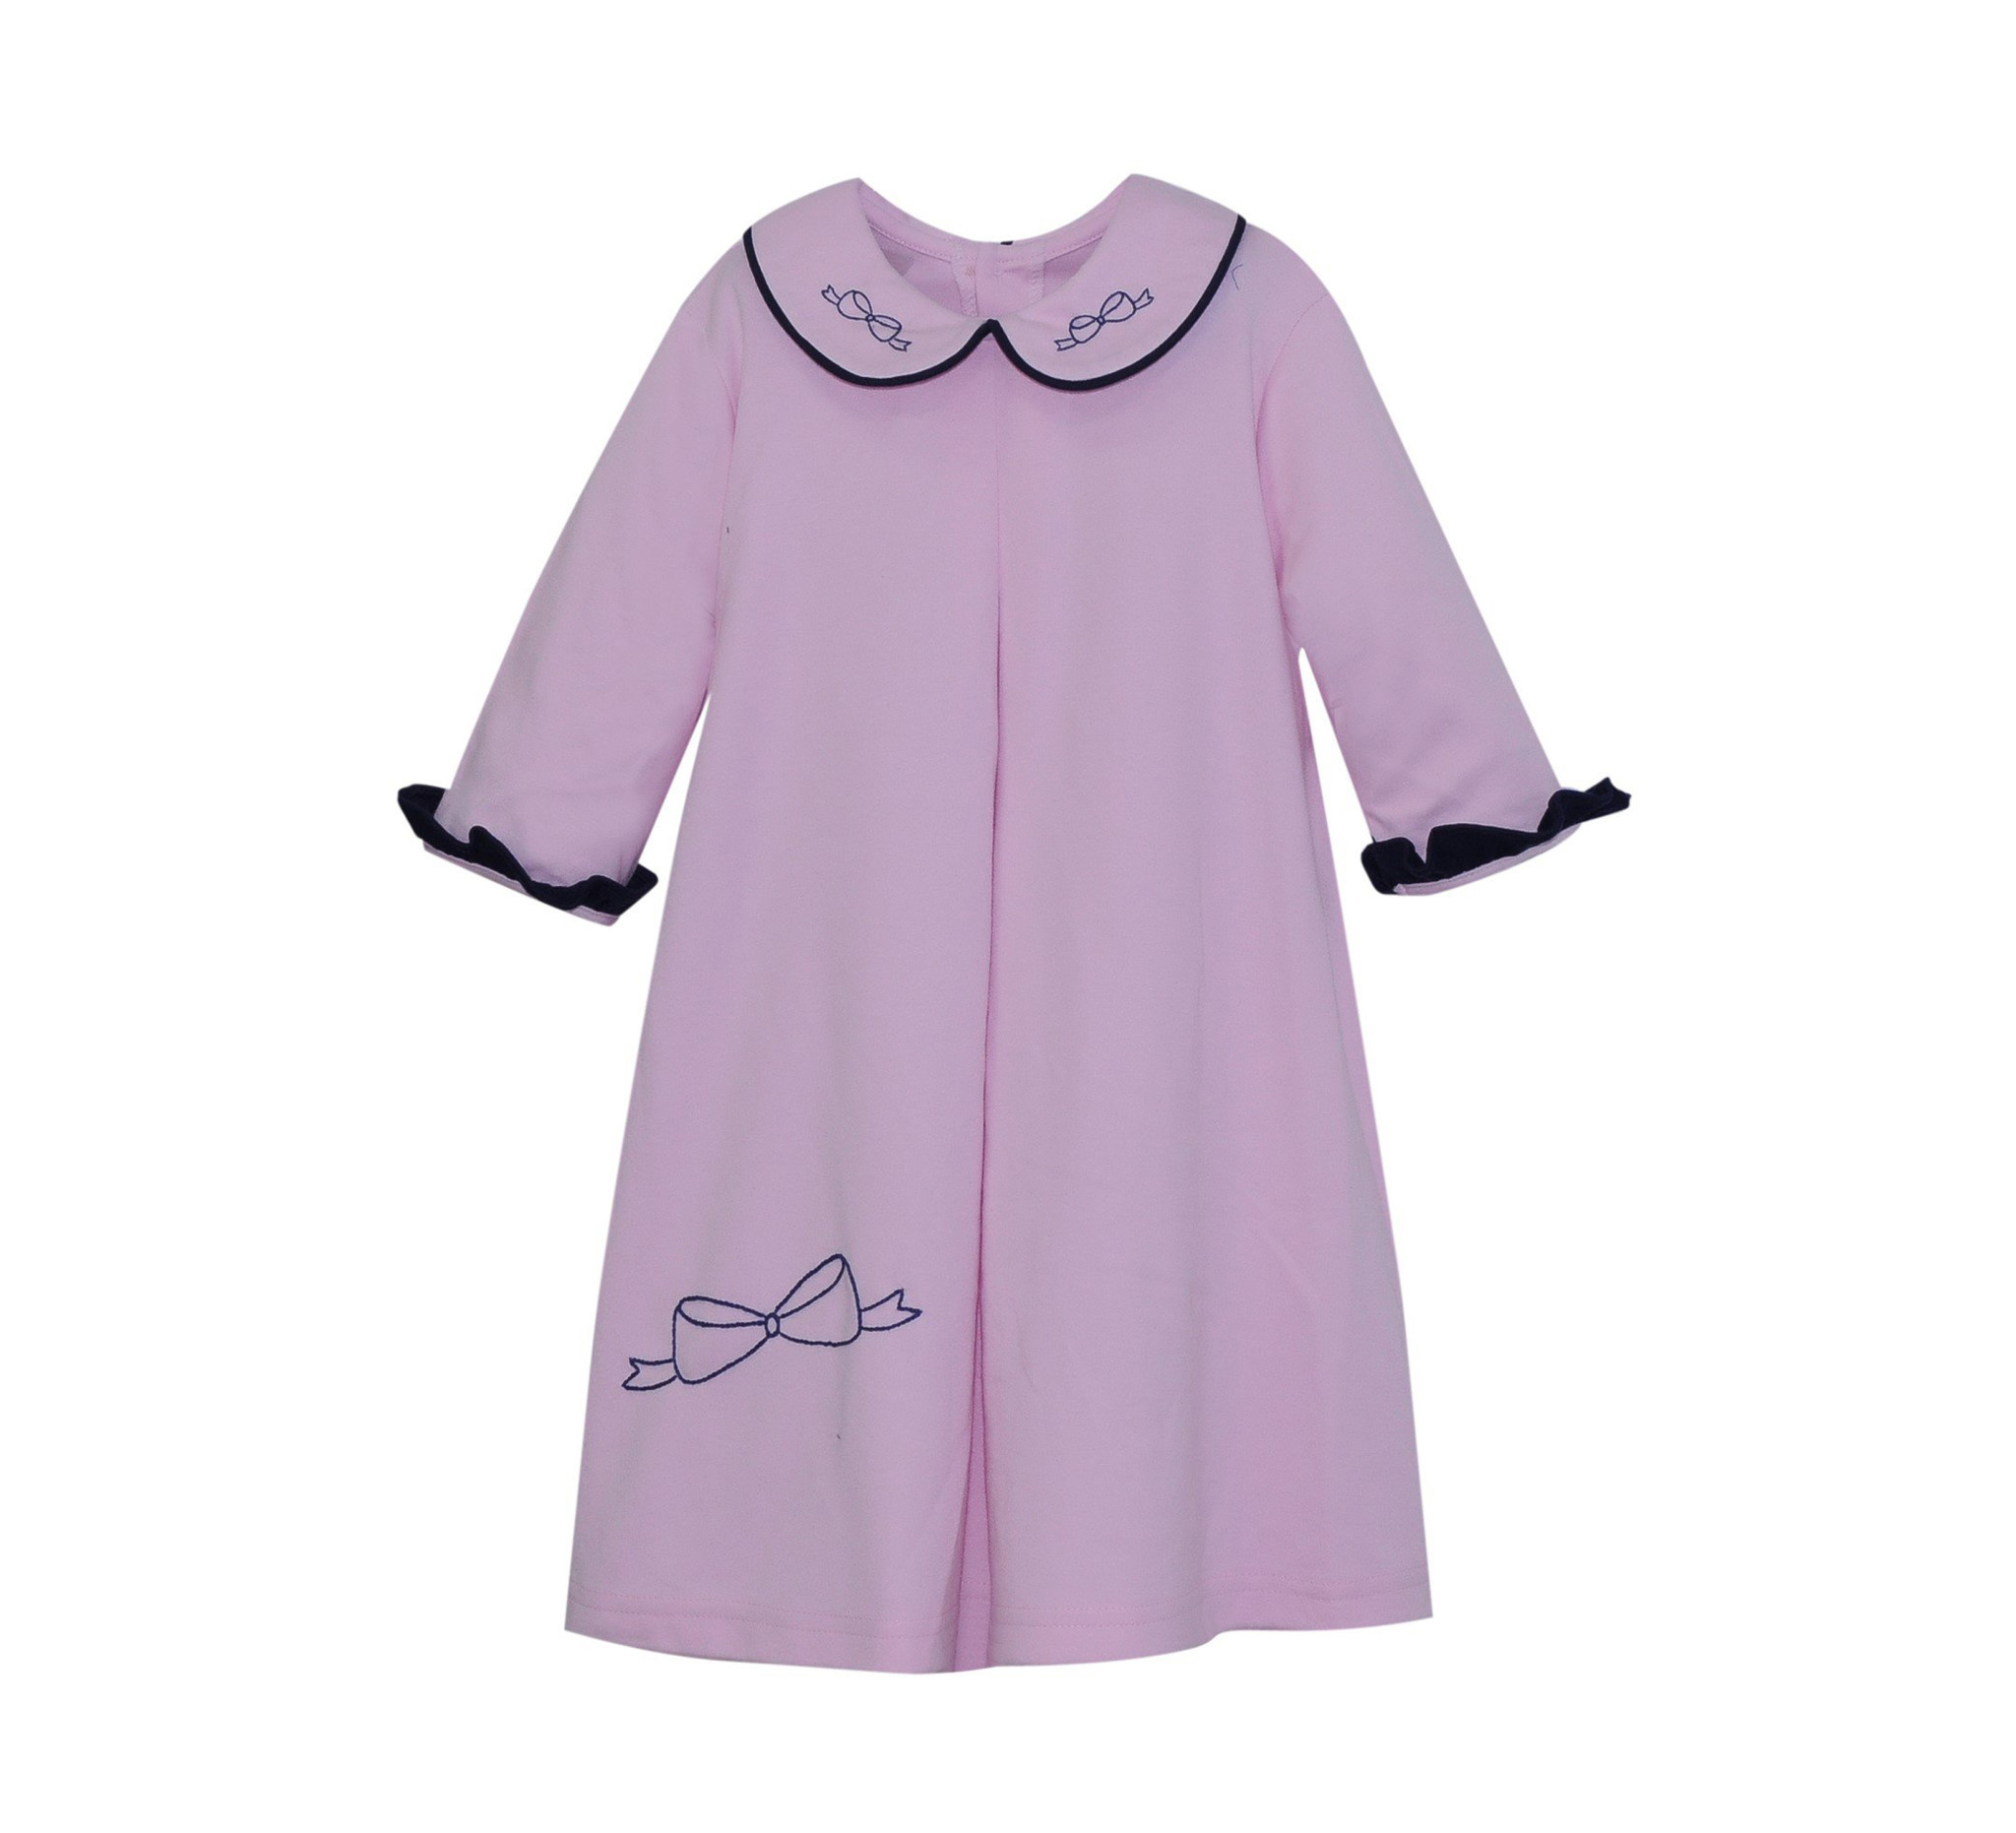 Lullaby Set Pink/Navy Bow Embroidered Dress